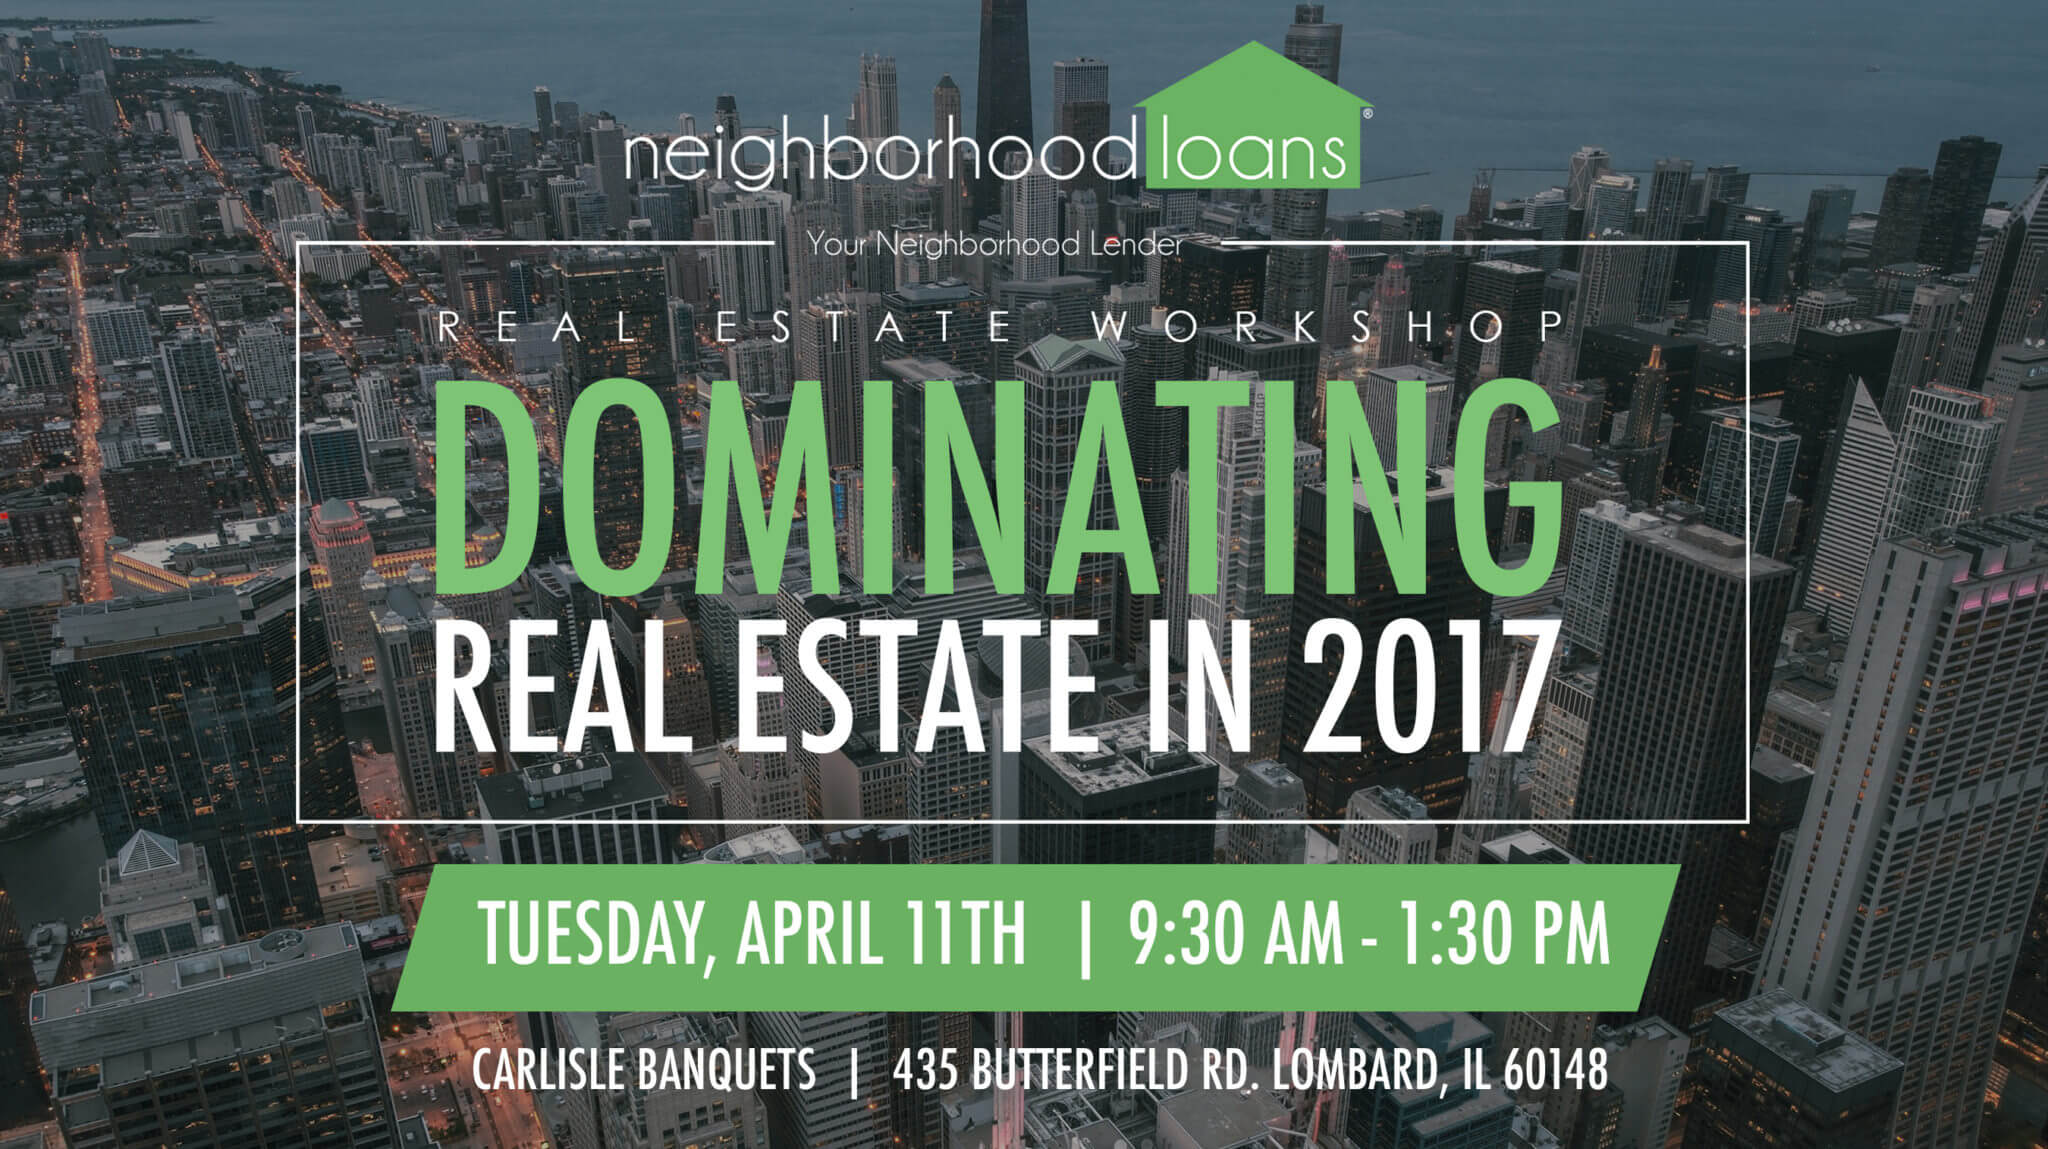 dominate real estate with neighborhood loans